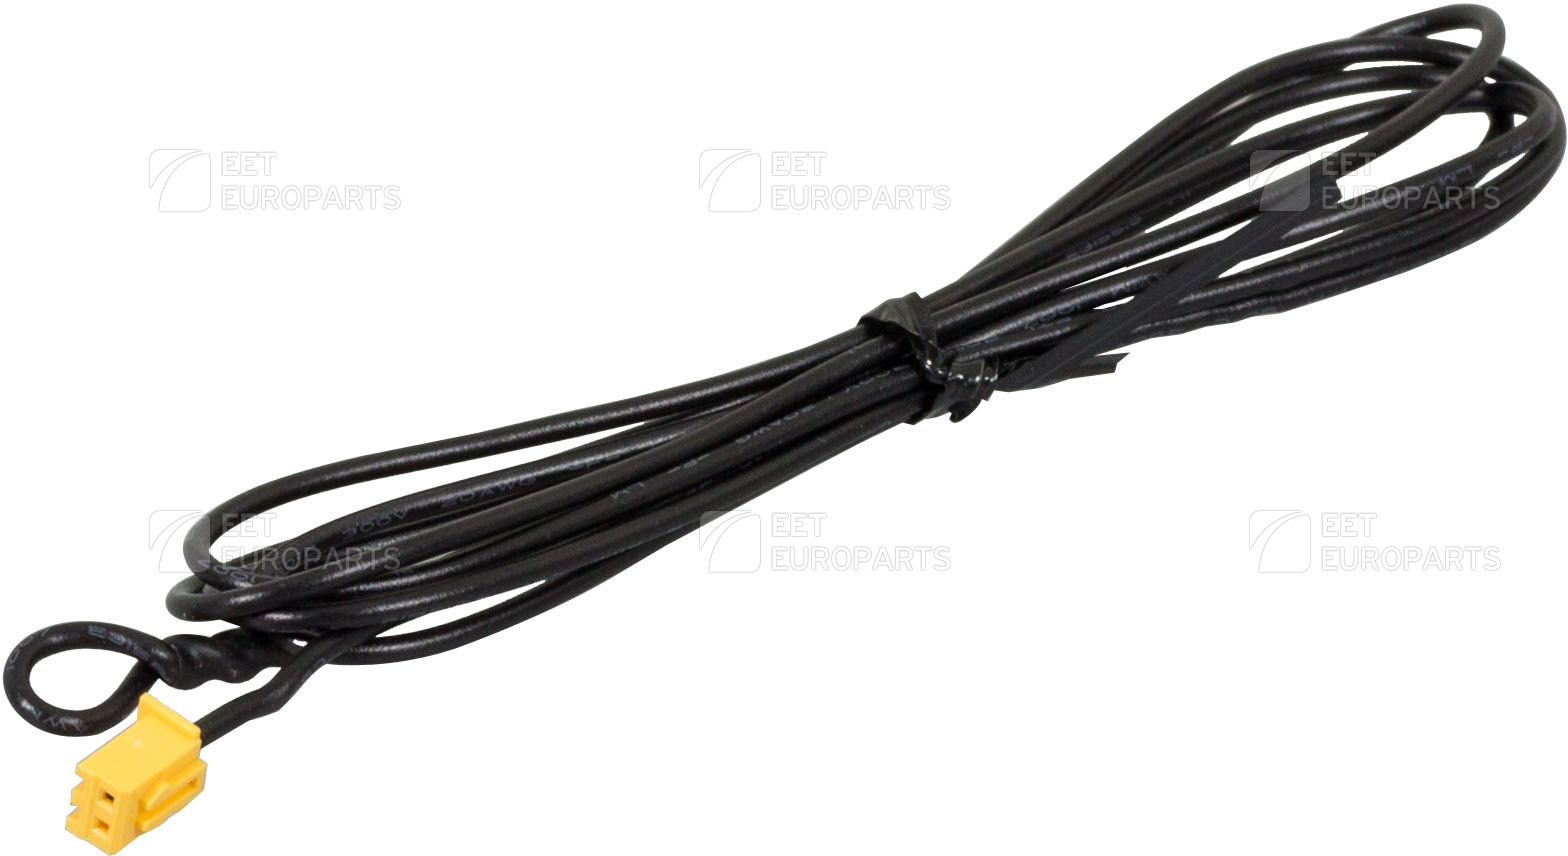 sony xplod cdx gt350mp wiring diagram 2000 international 4900 gt420ip harness kenwood kdc